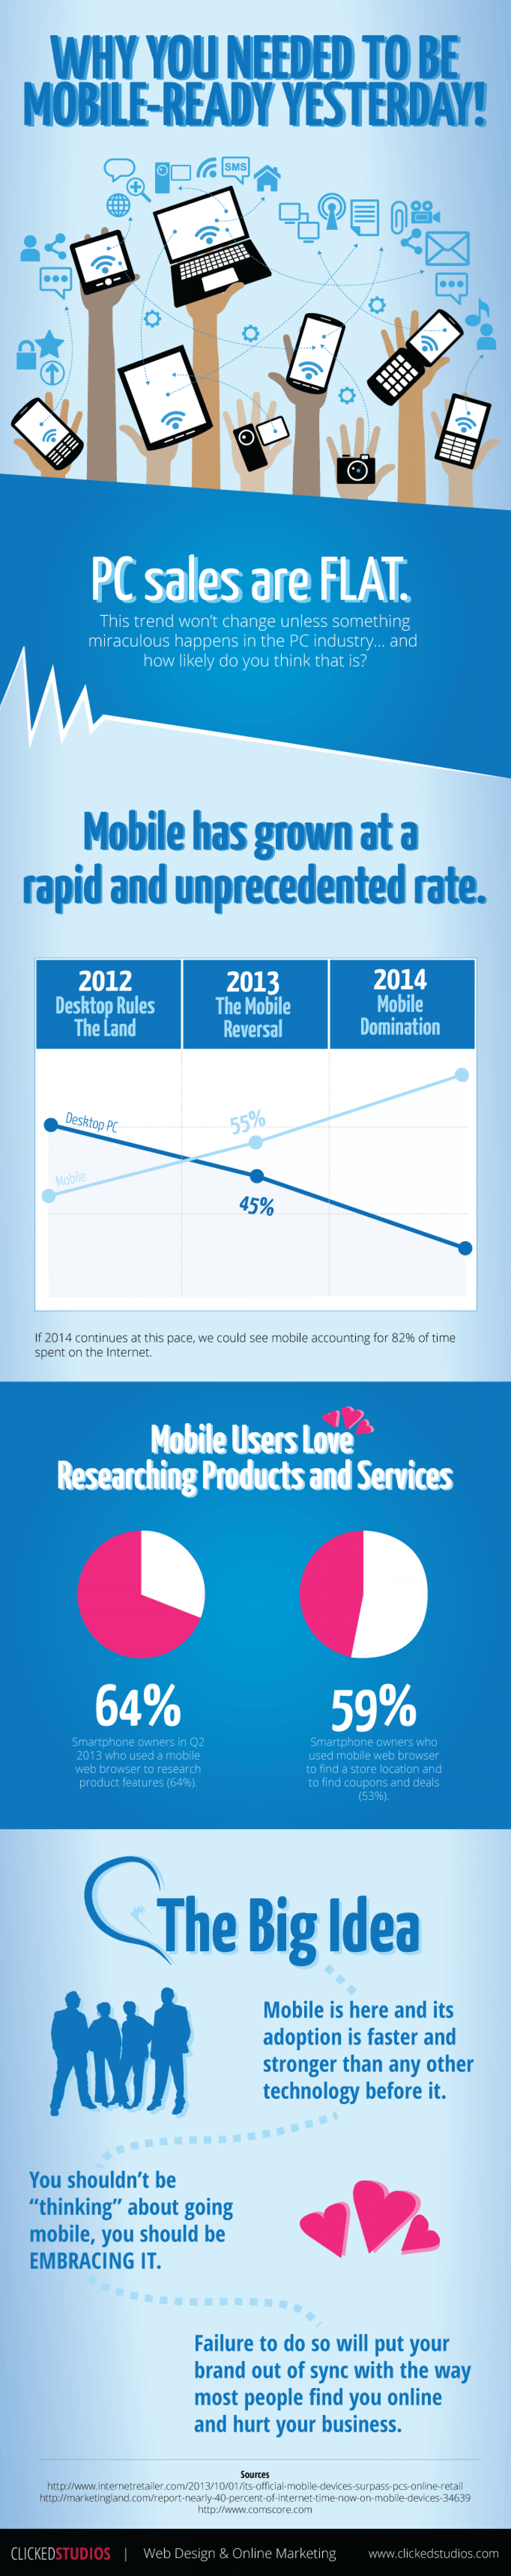 Why You Needed To Be Mobile-Ready Yesterday Infographic